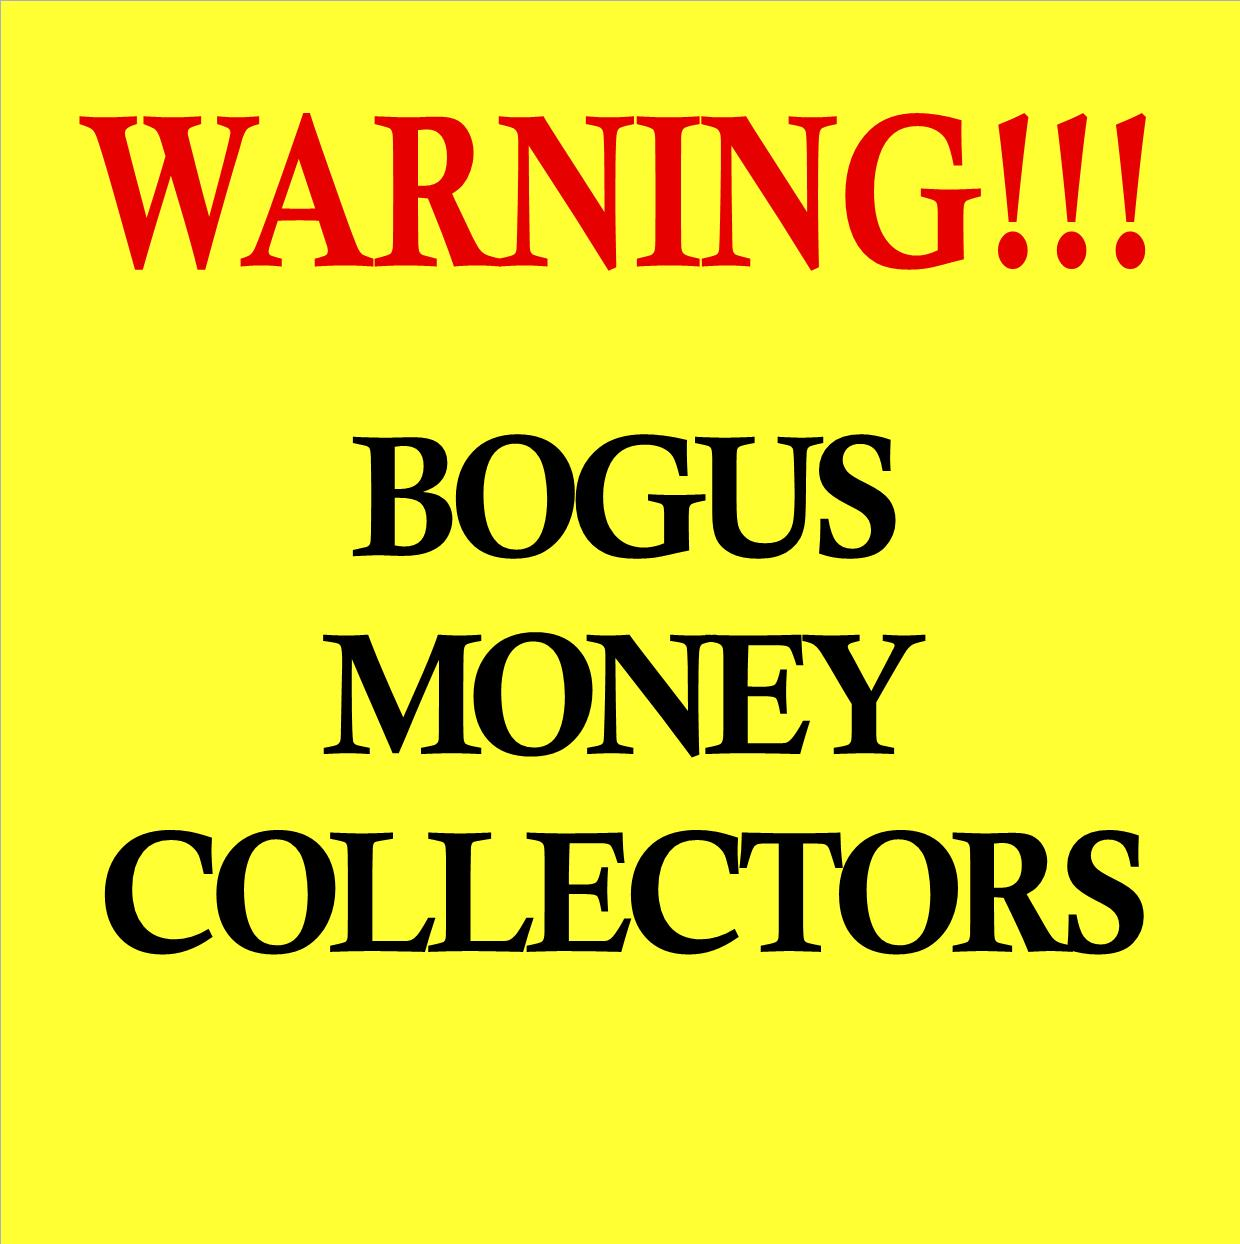 WARNING!! Bogus money collectors.